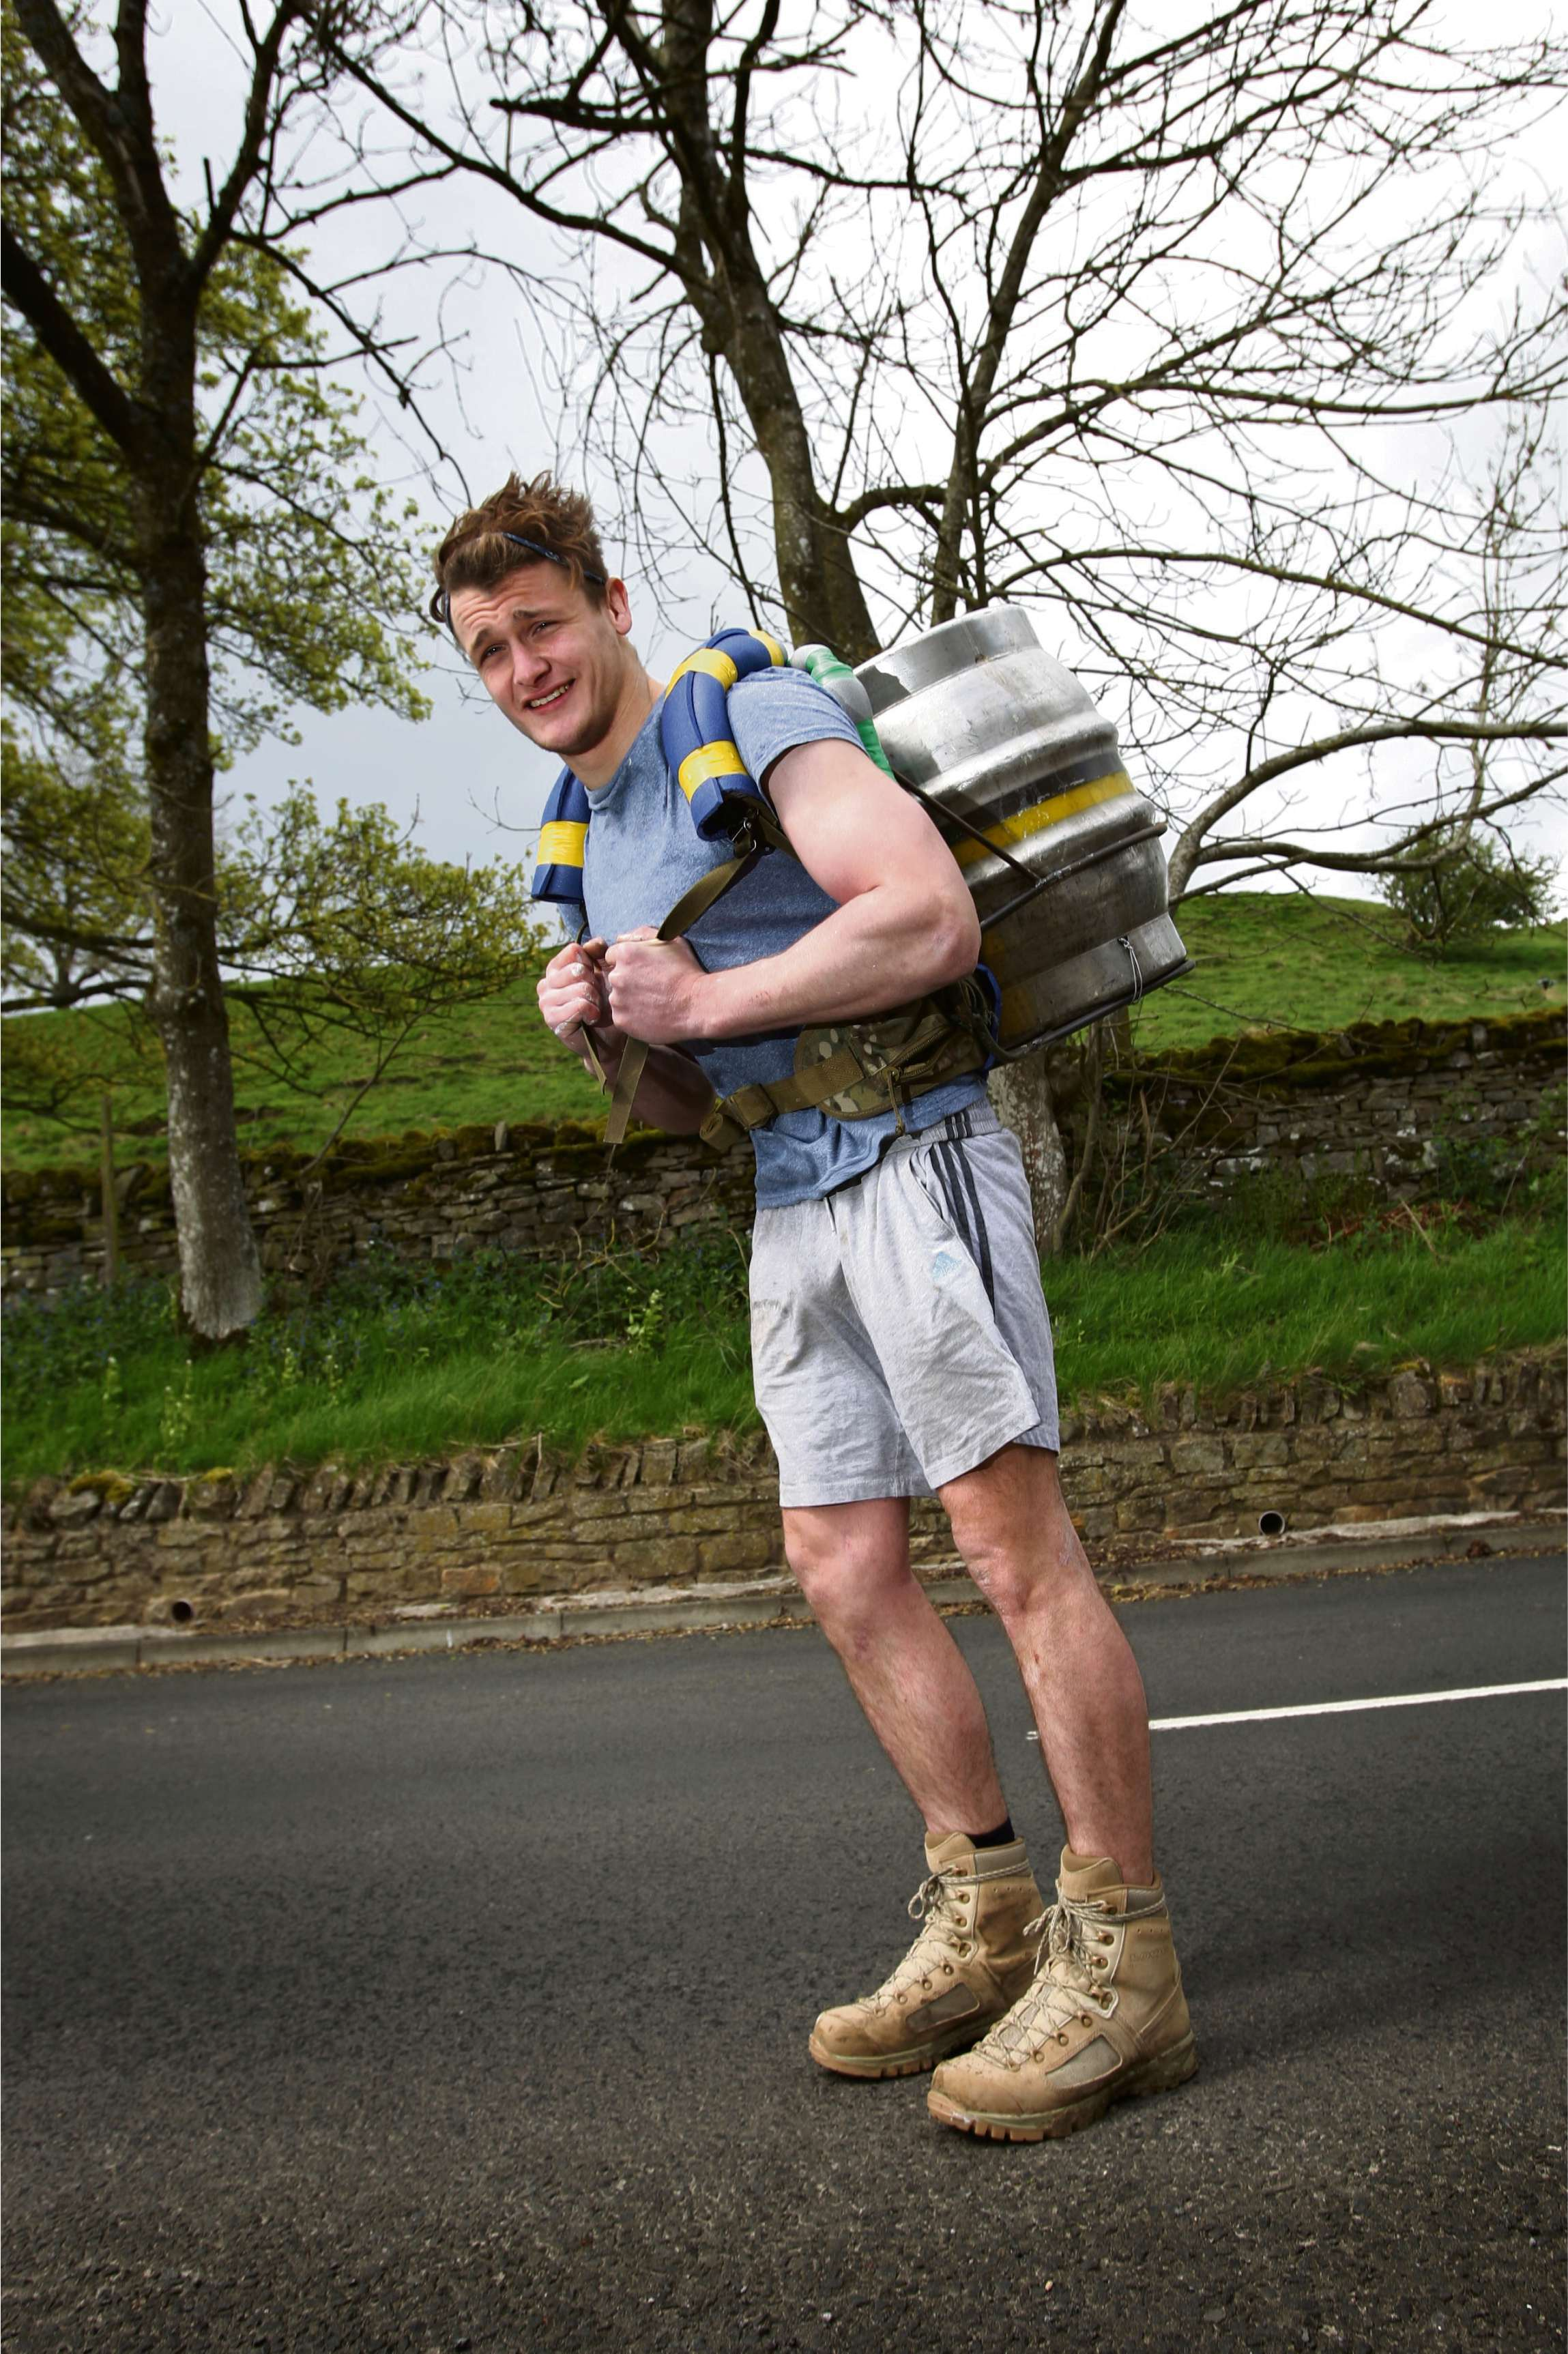 Teesdale fundraiser attempts to run 100 miles with beer keg on his back